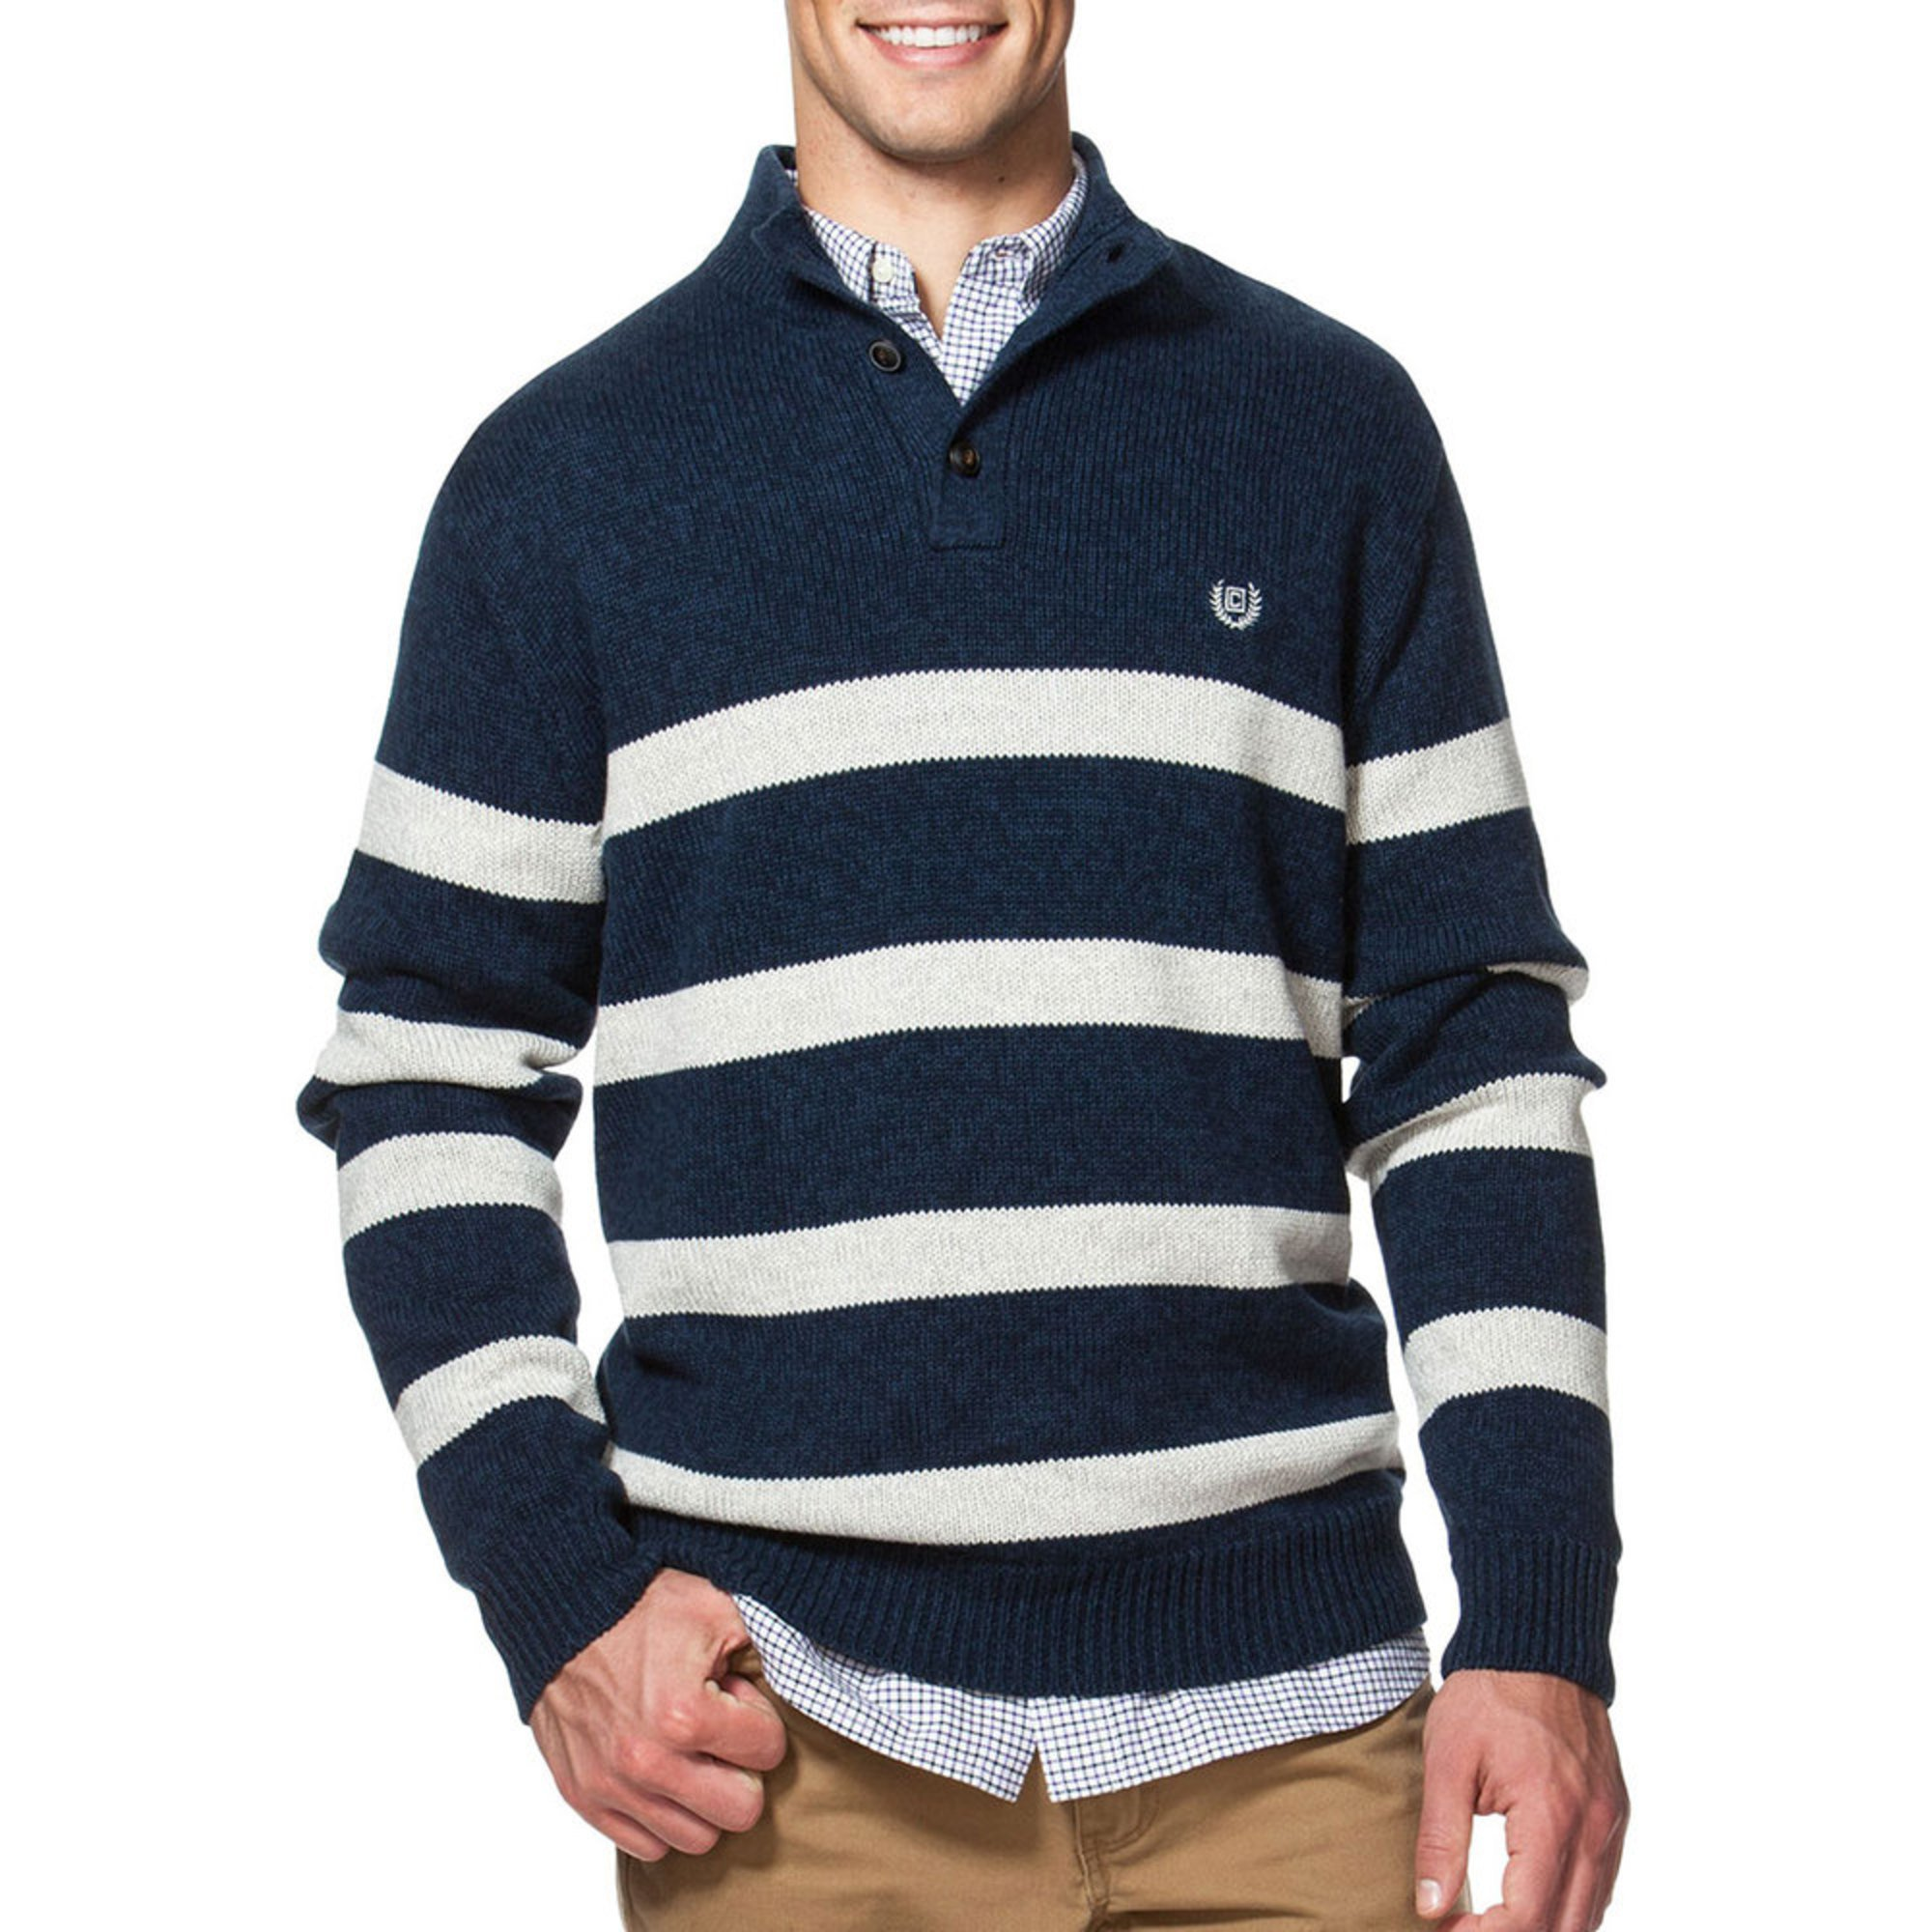 how to add stripes to a sweater